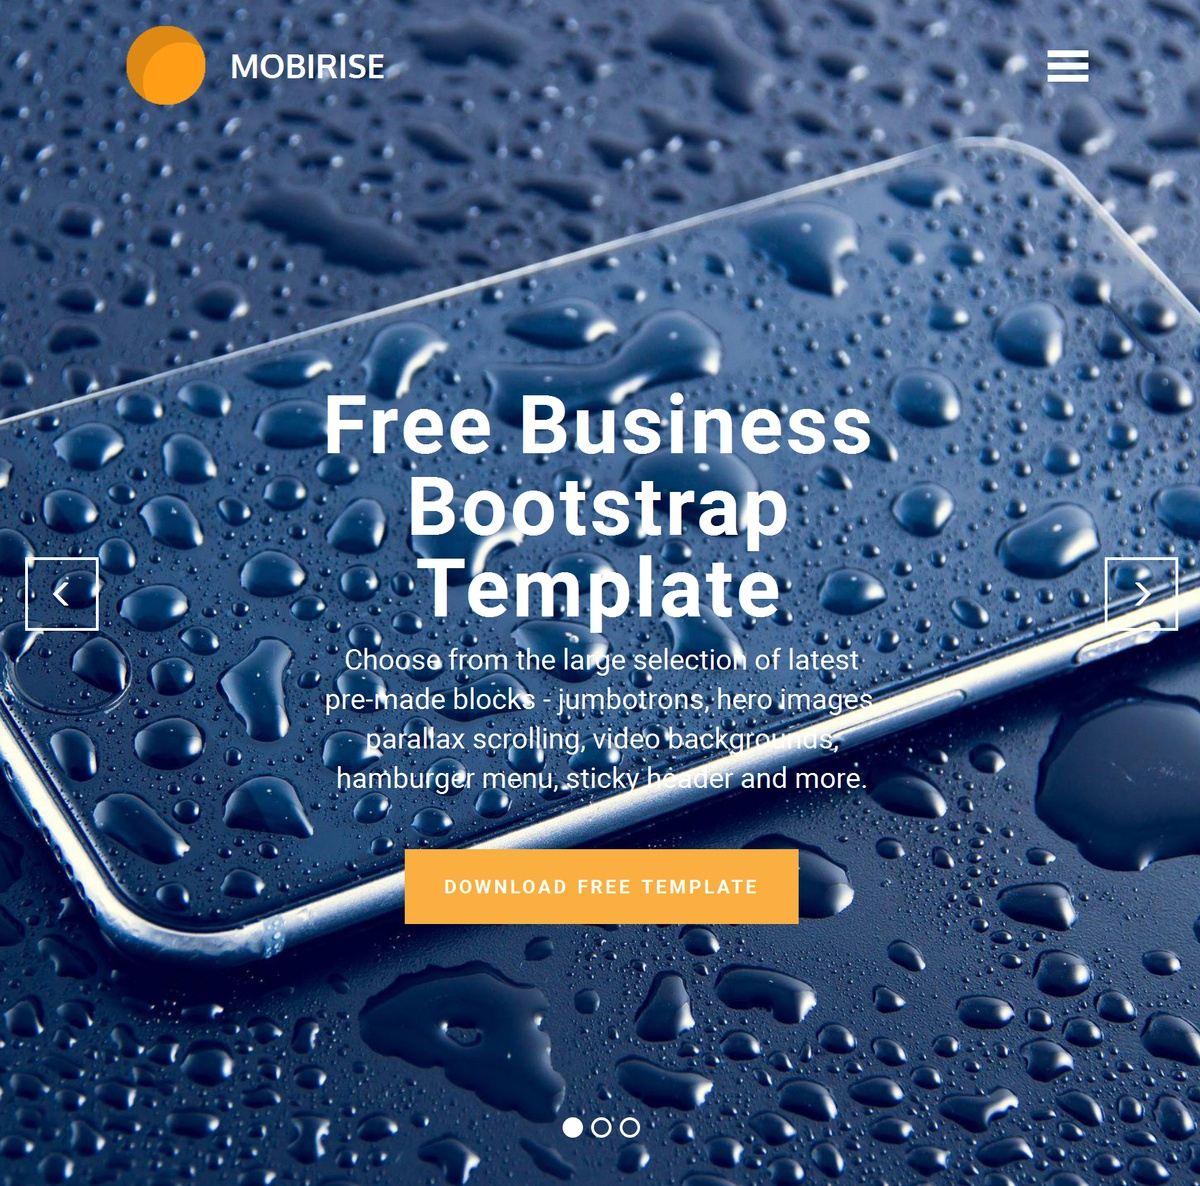 Mobile Responsive Website Templates Themes Extensions